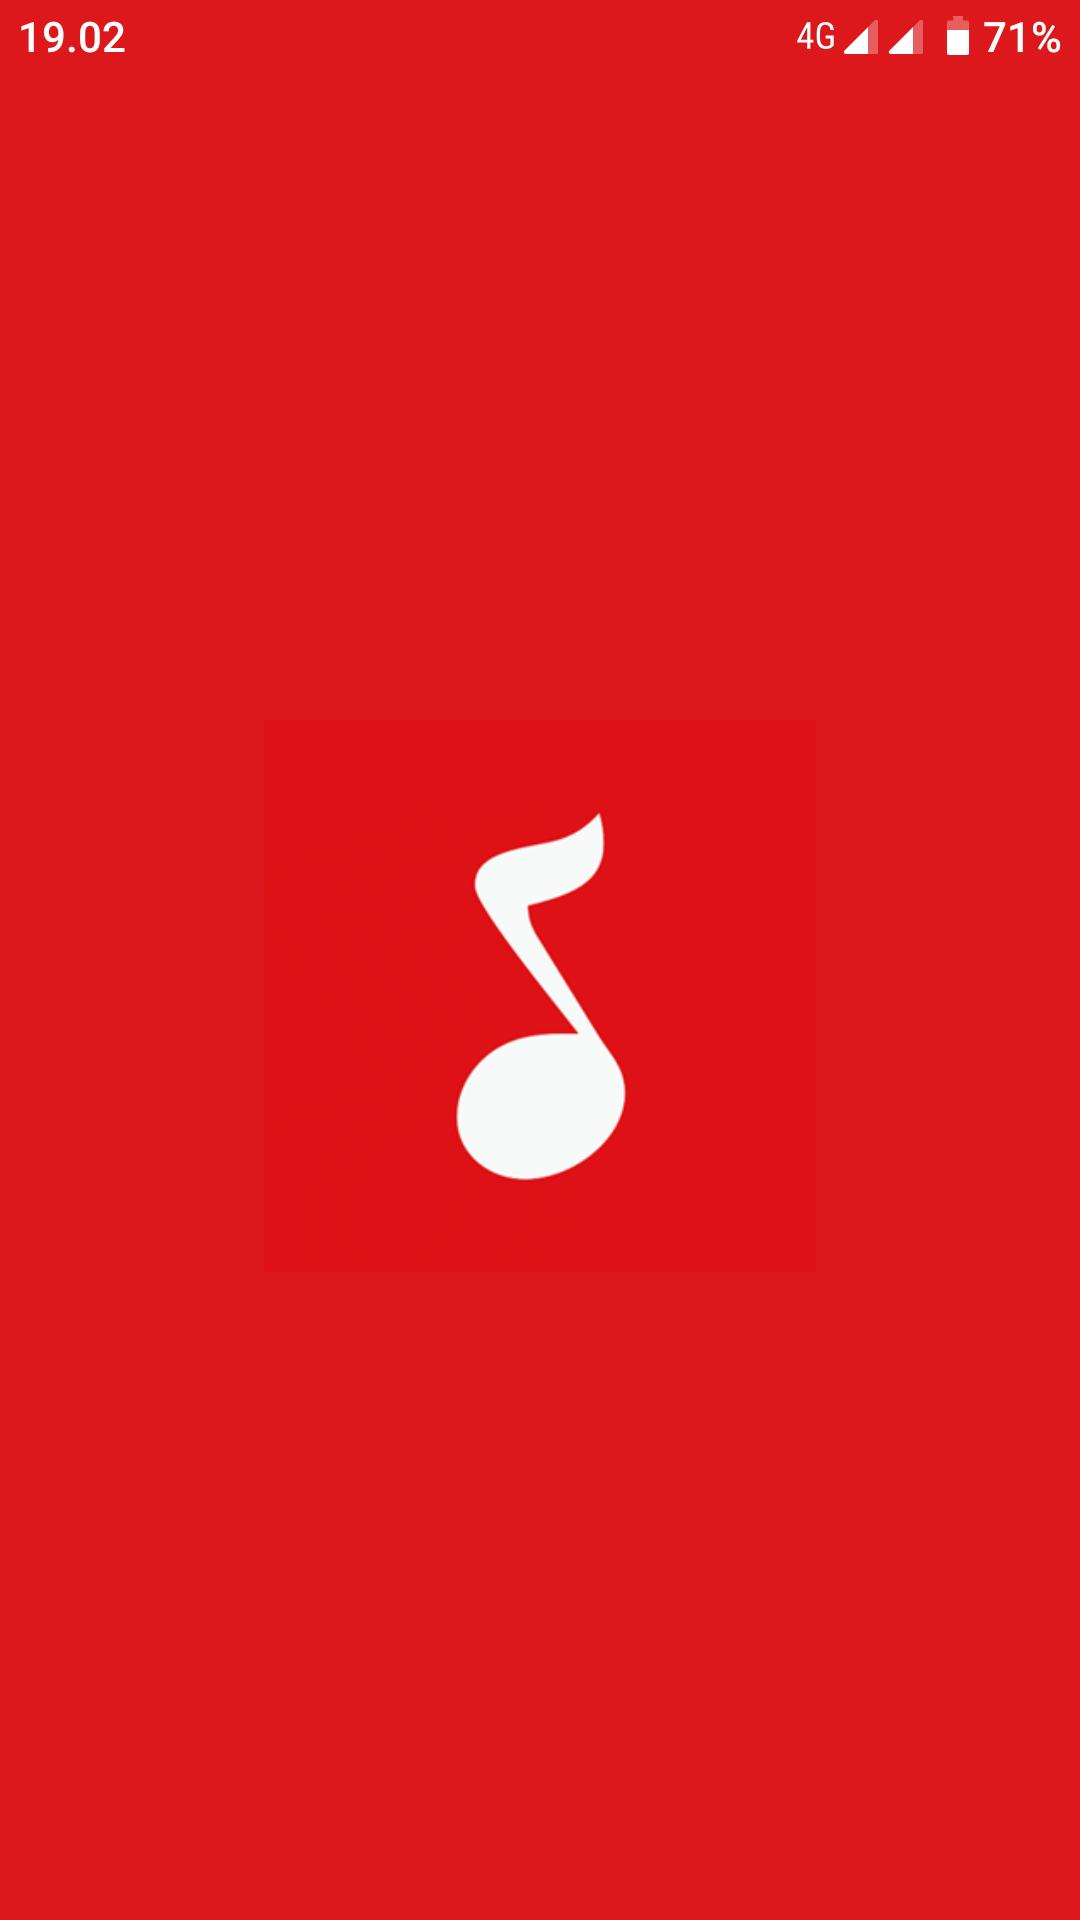 MP3 Y2Mate Music for Android - APK Download